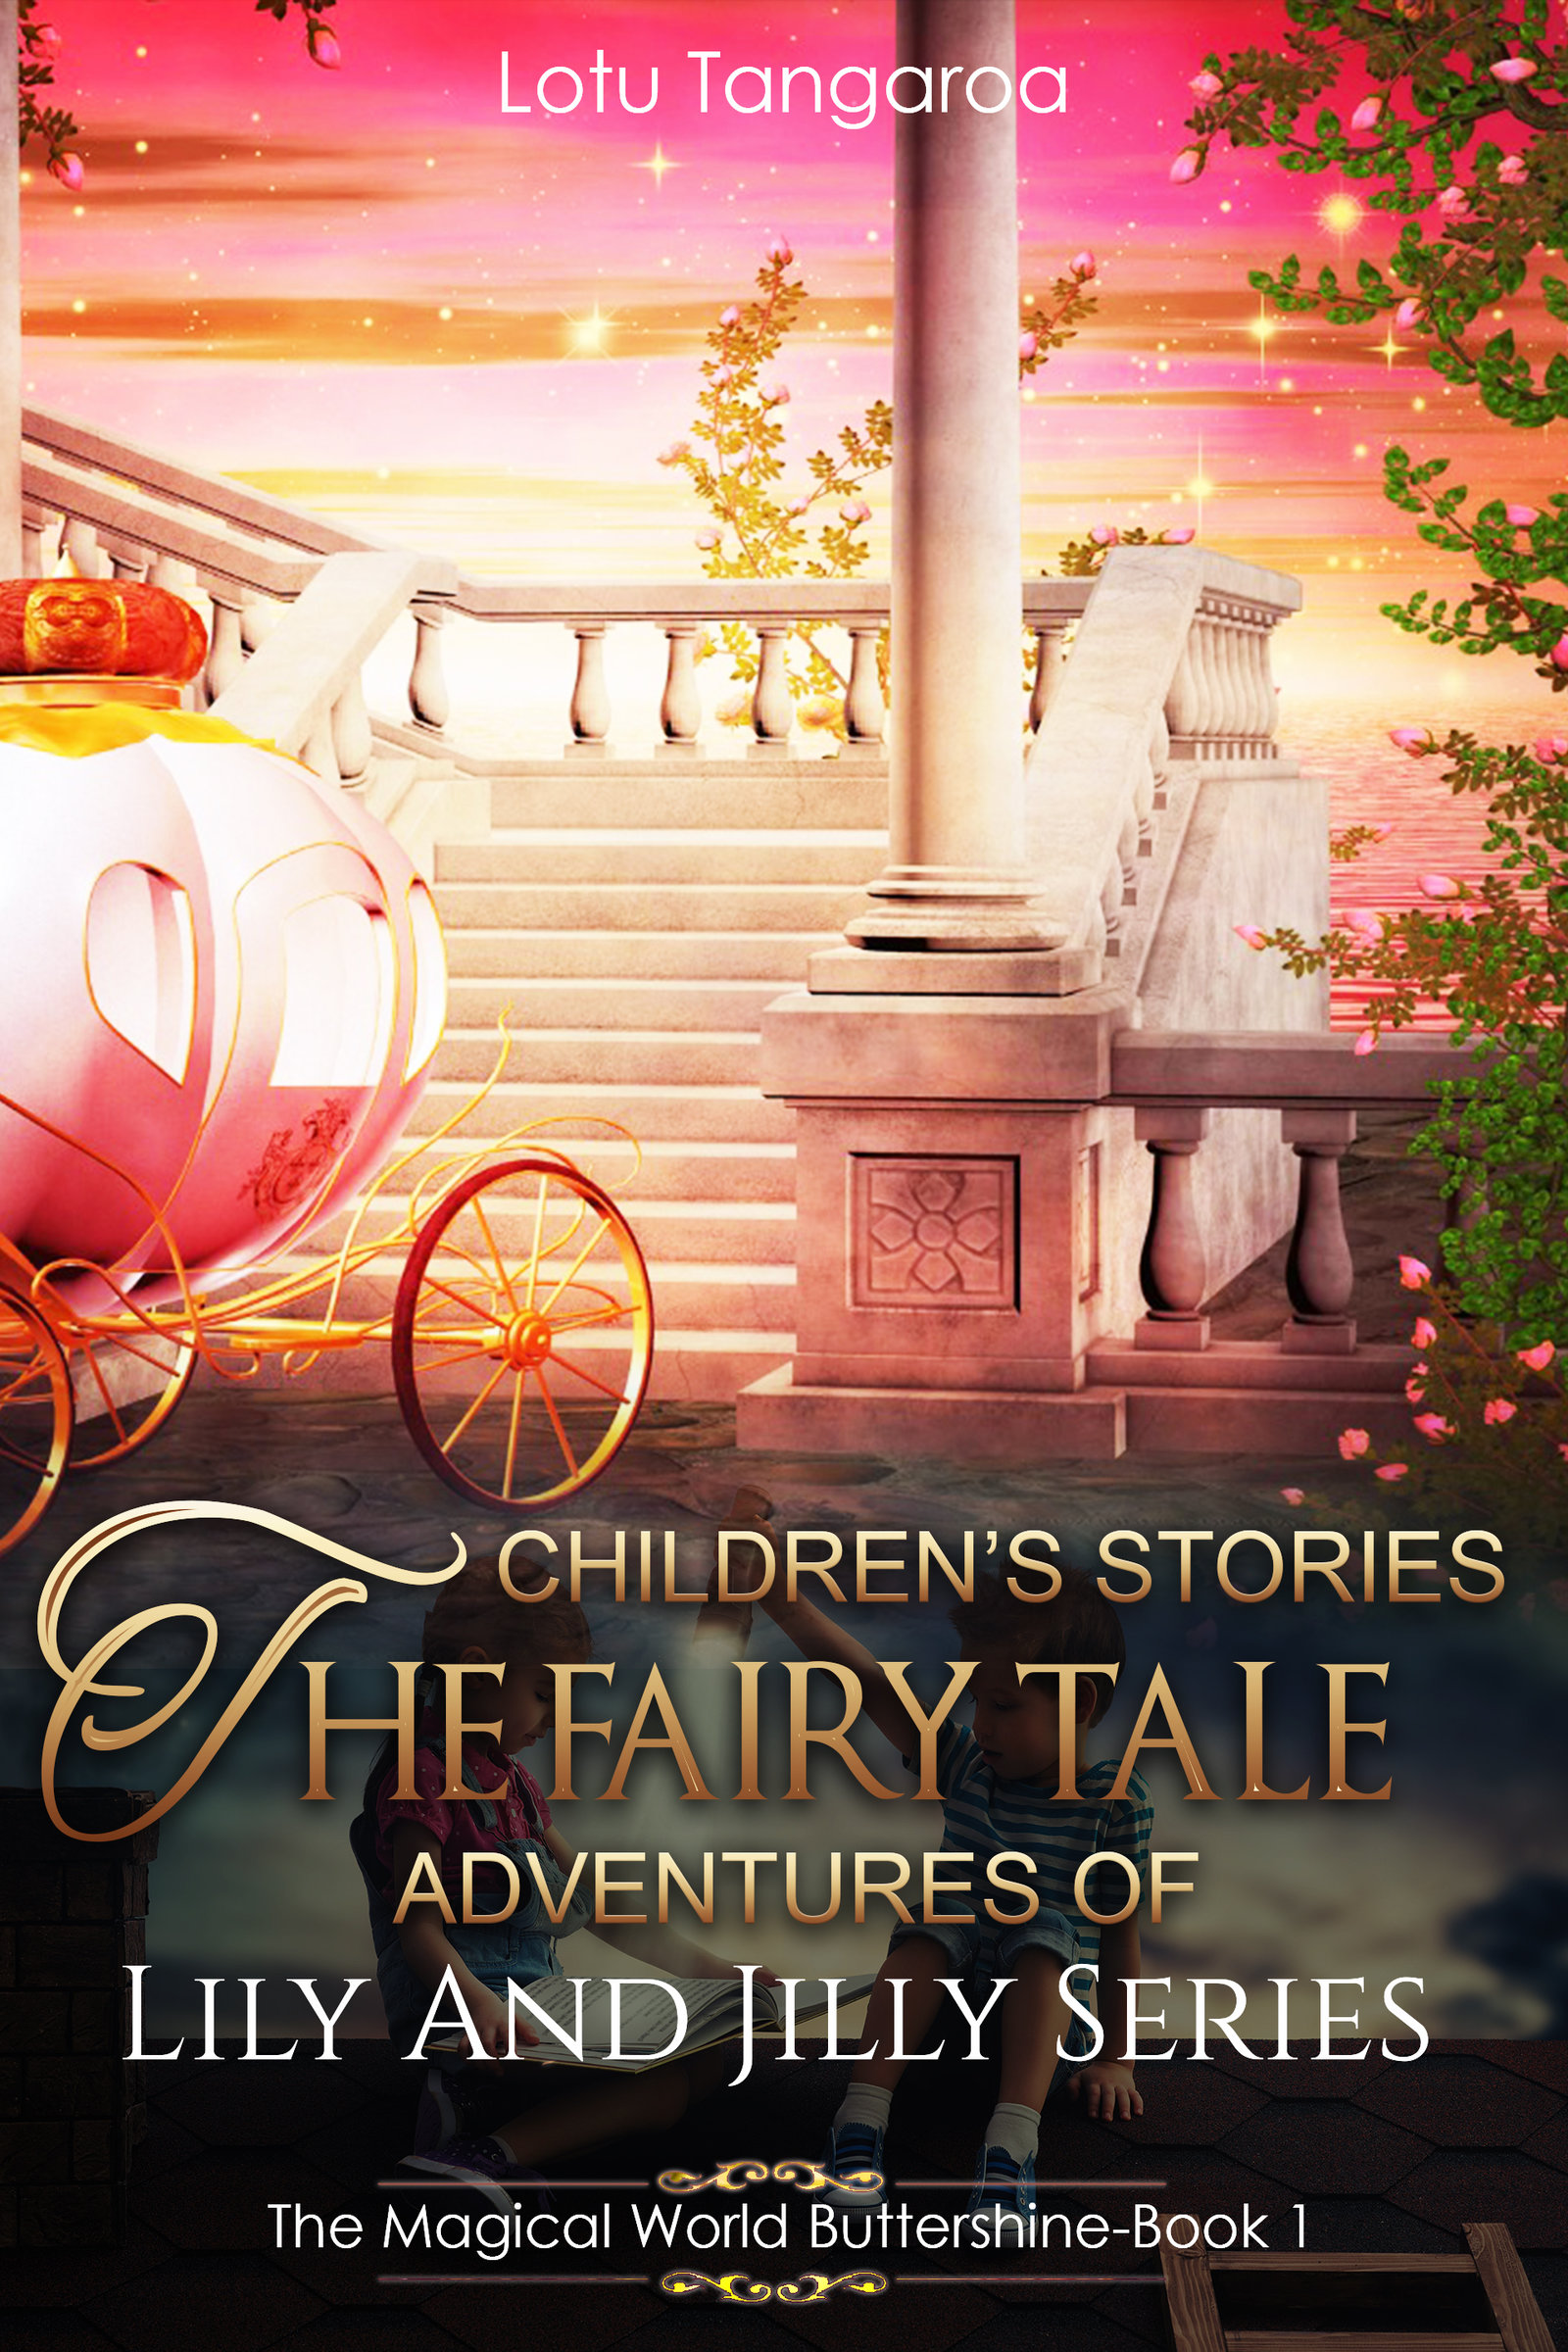 Children's Stories: The Fairy Tale Adventures of Lily And Jilly Series – Book 1 – The Magical World Buttershine (sst-ccci)